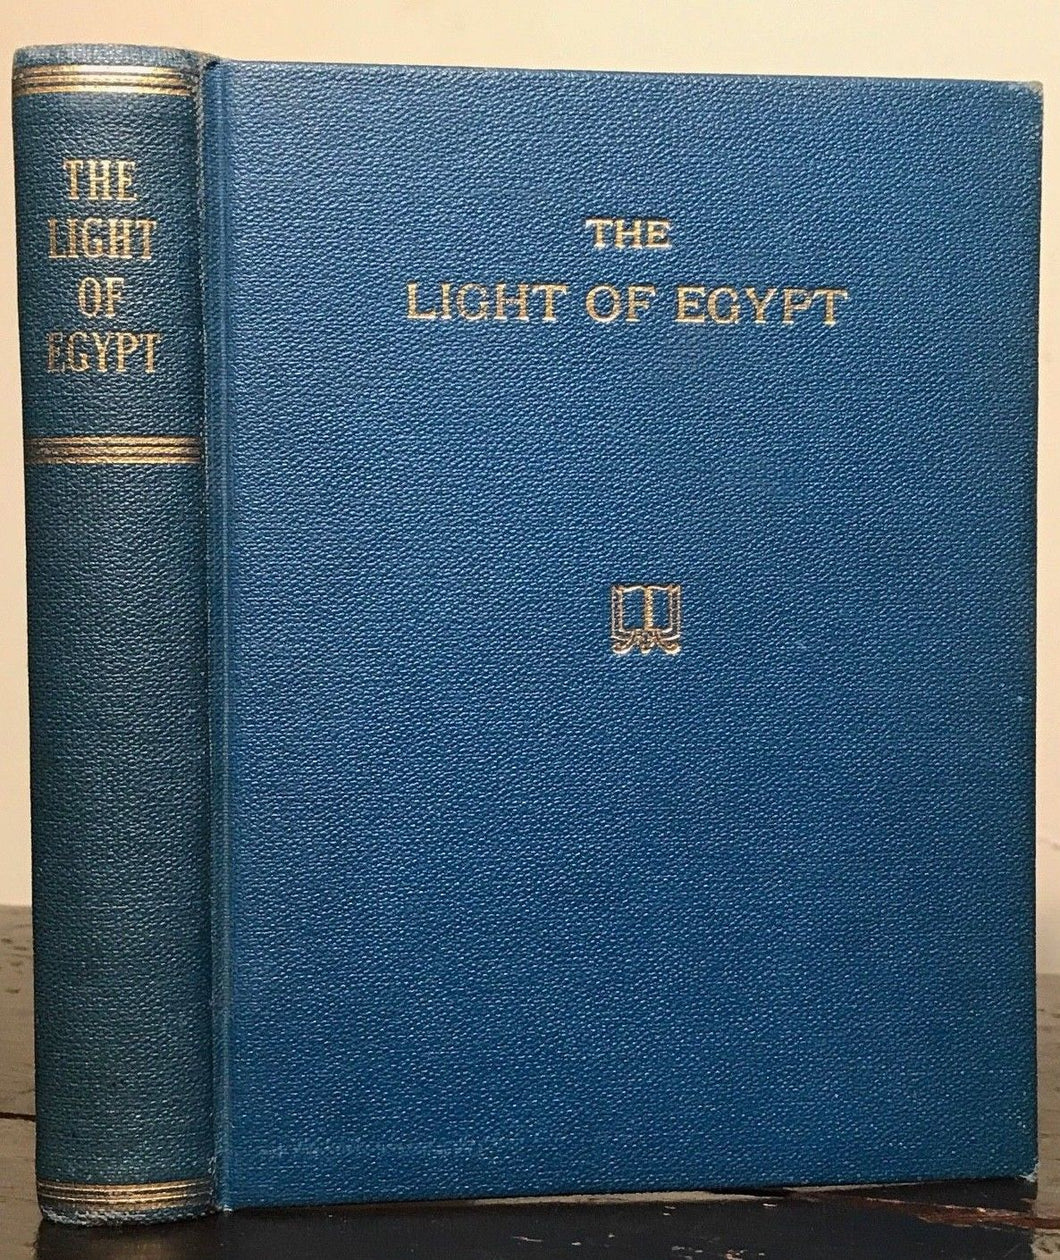 1895 — THE LIGHT OF EGYPT or THE SCIENCE OF THE SOUL & STARS by THOMAS BURGOYNE